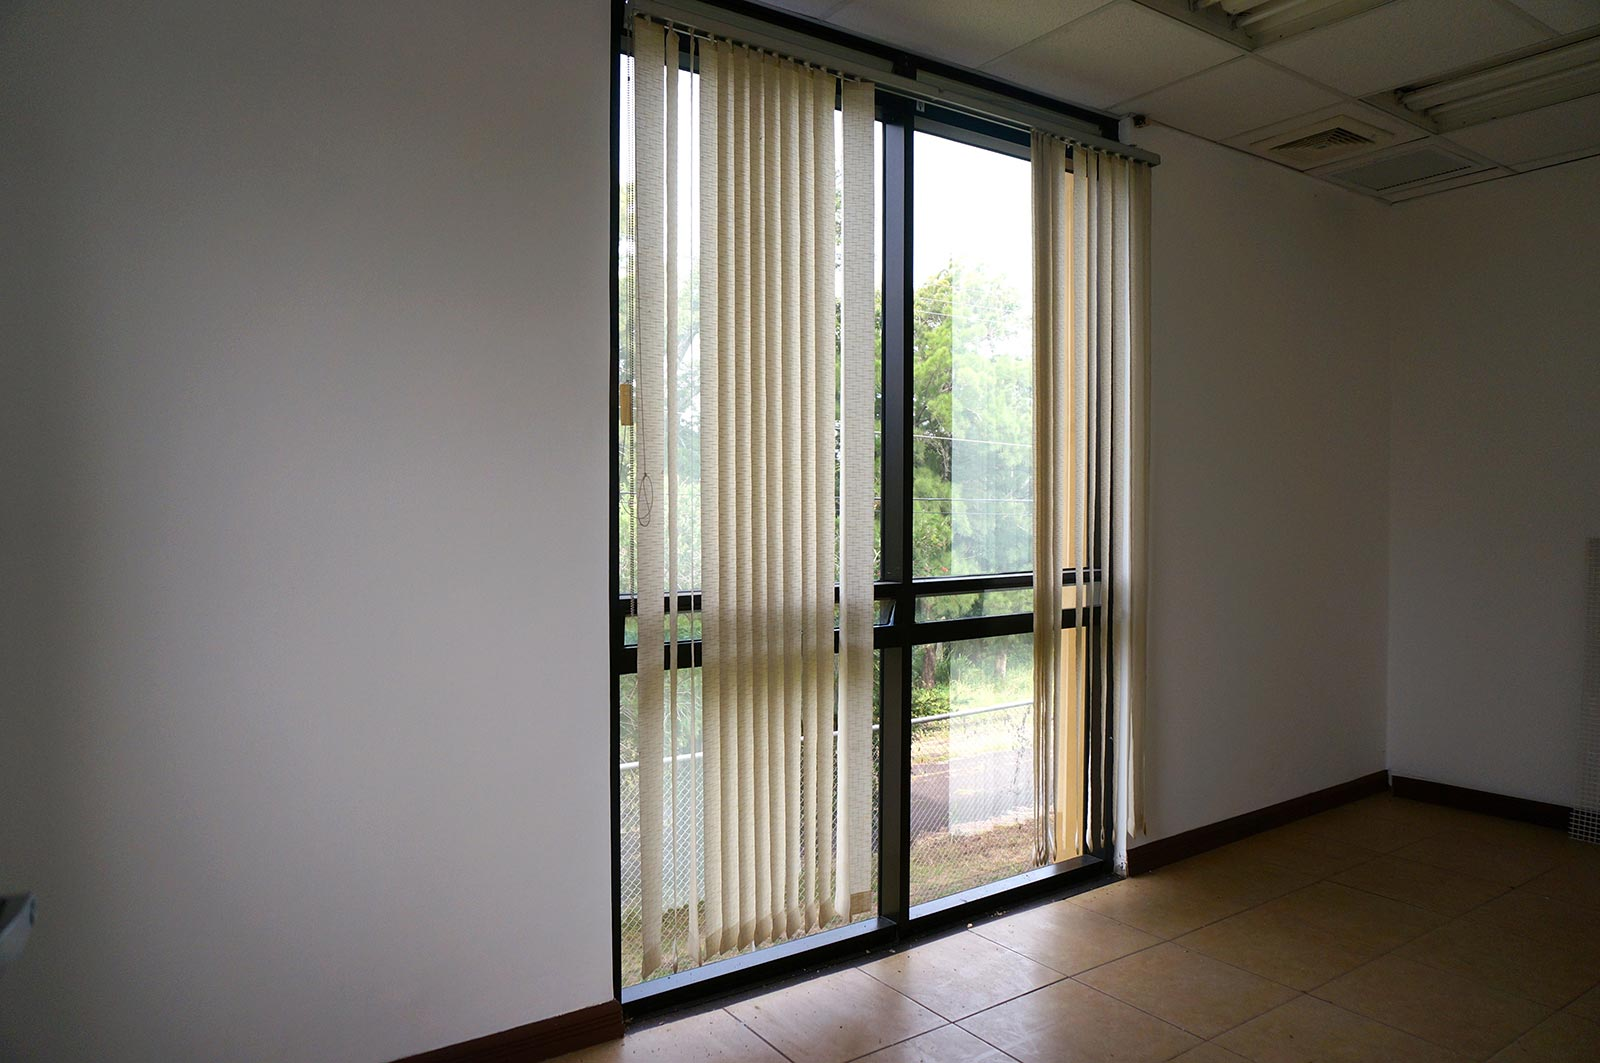 Office for rent. strategic location. Santa Ana. Furnished. unfurnished. Tenant improvement allowance. Forum business center. highway 27.